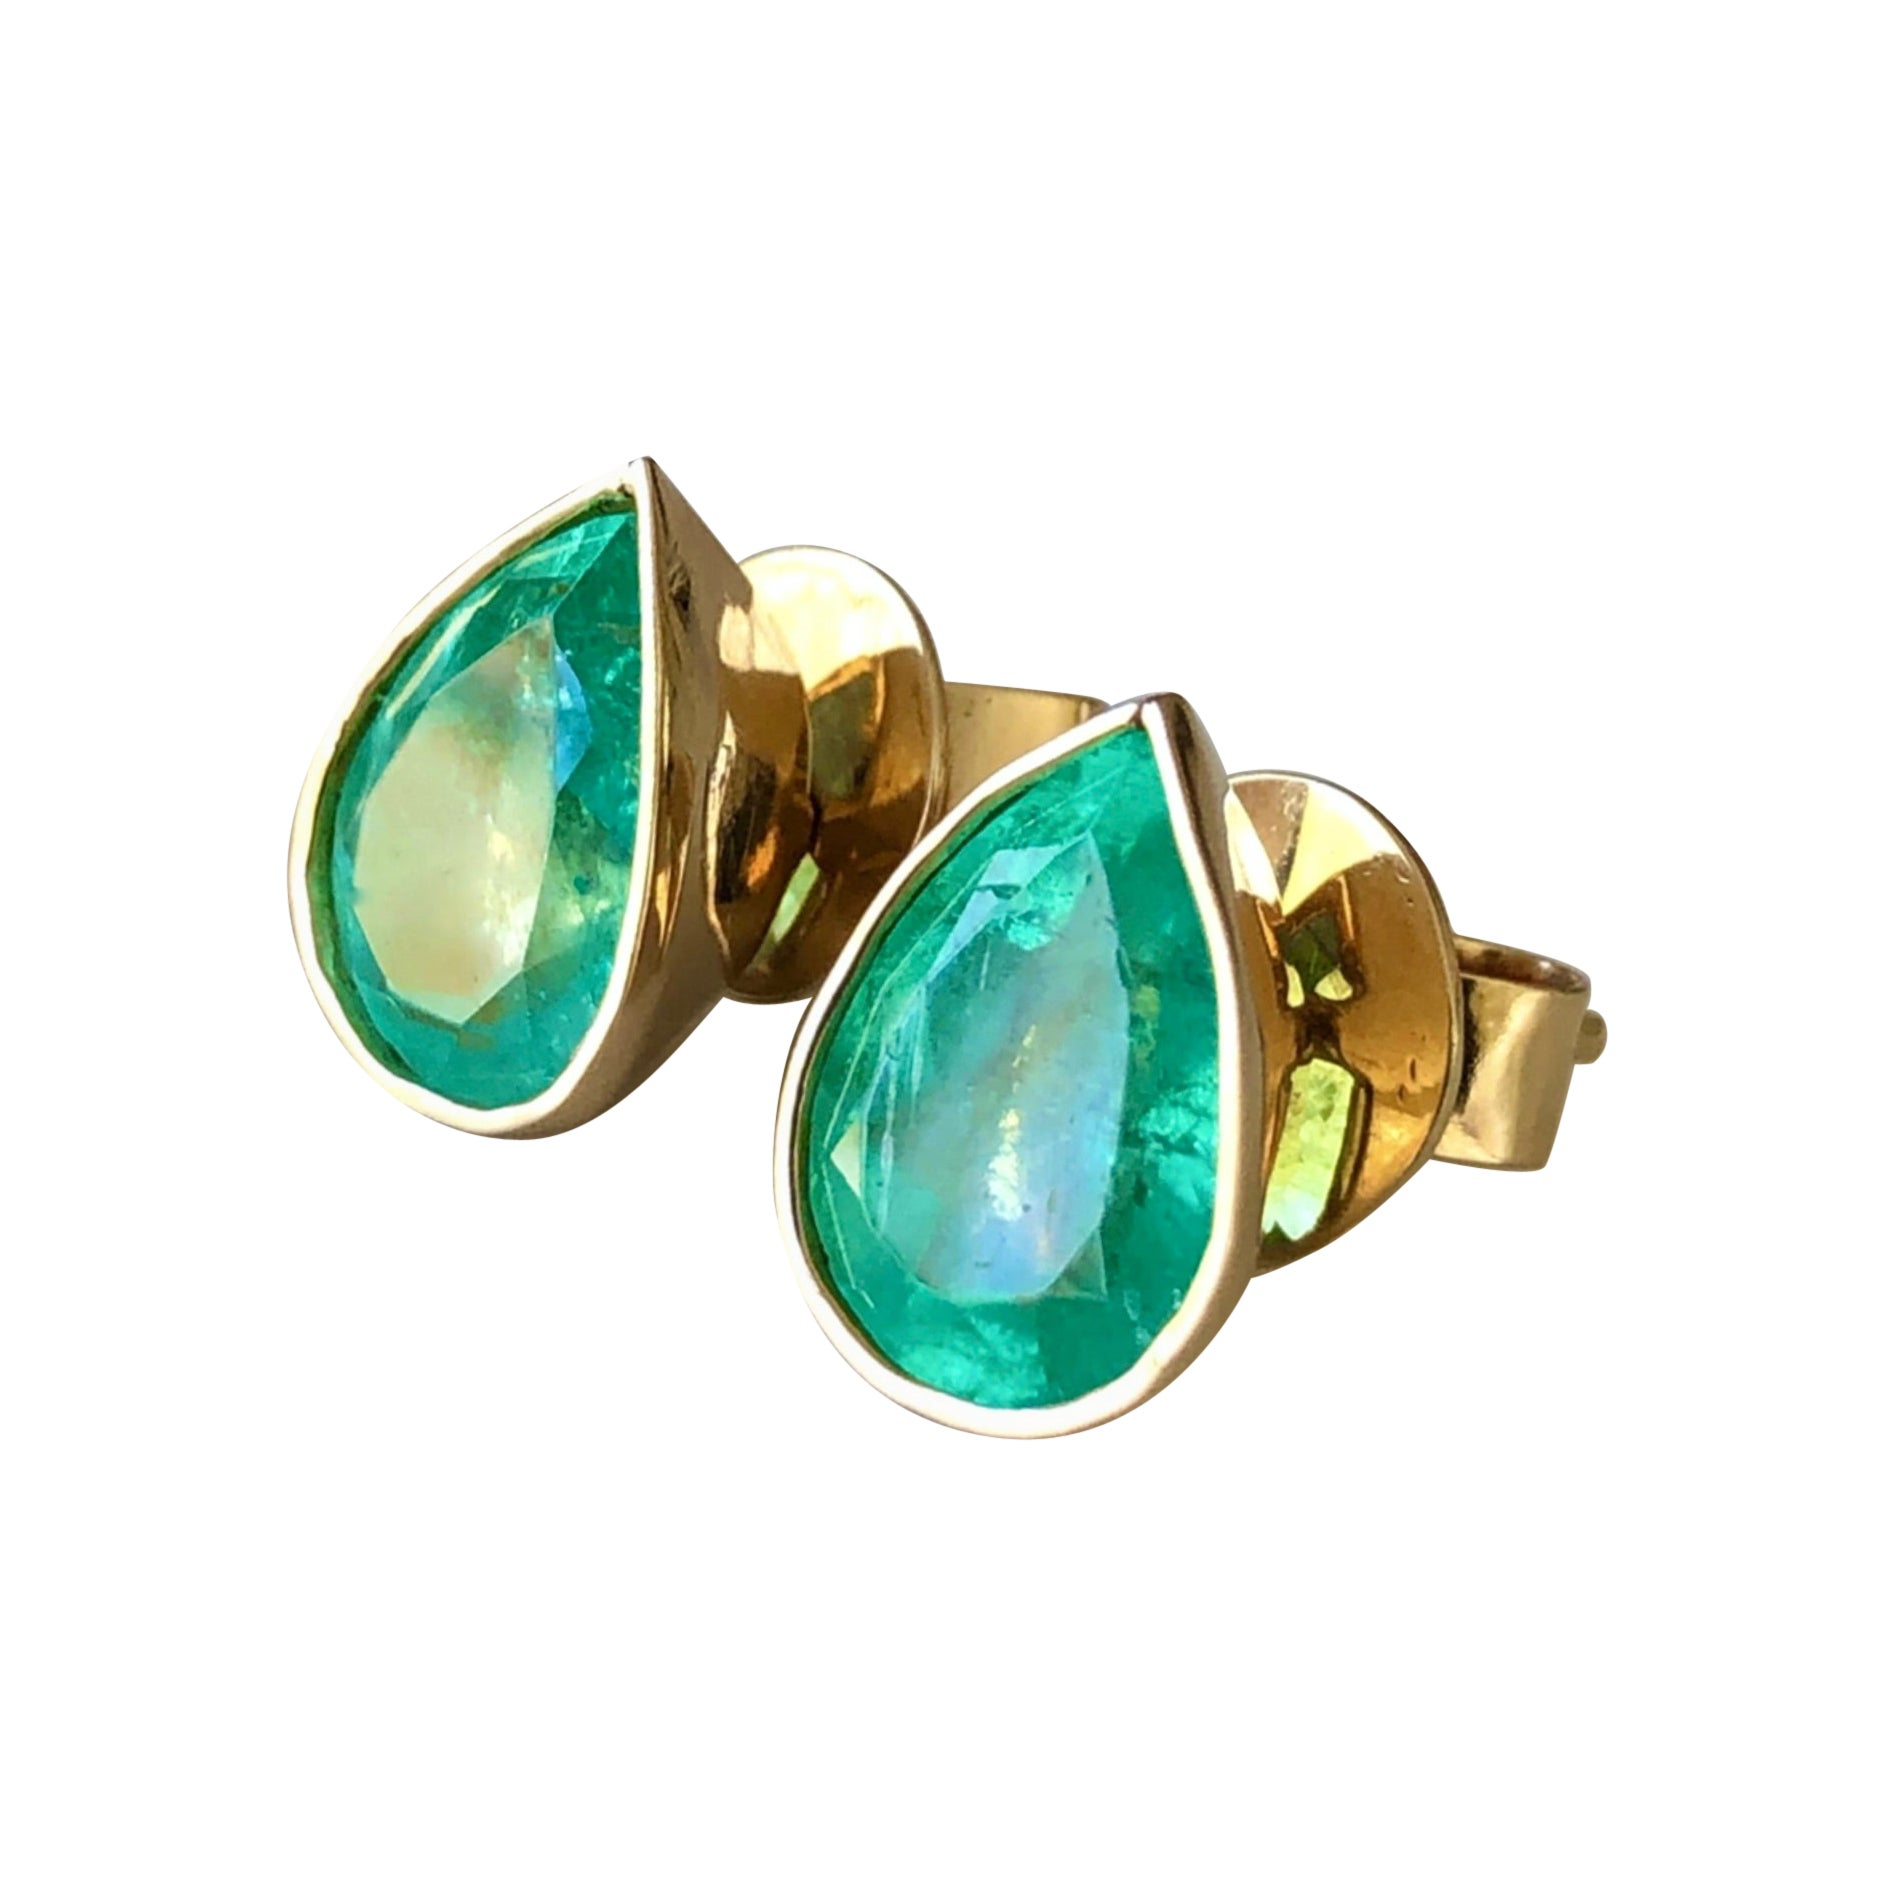 2.00ct Natural Colombian Emerald Pear Cut Studs Earrings 18k Yellow Gold